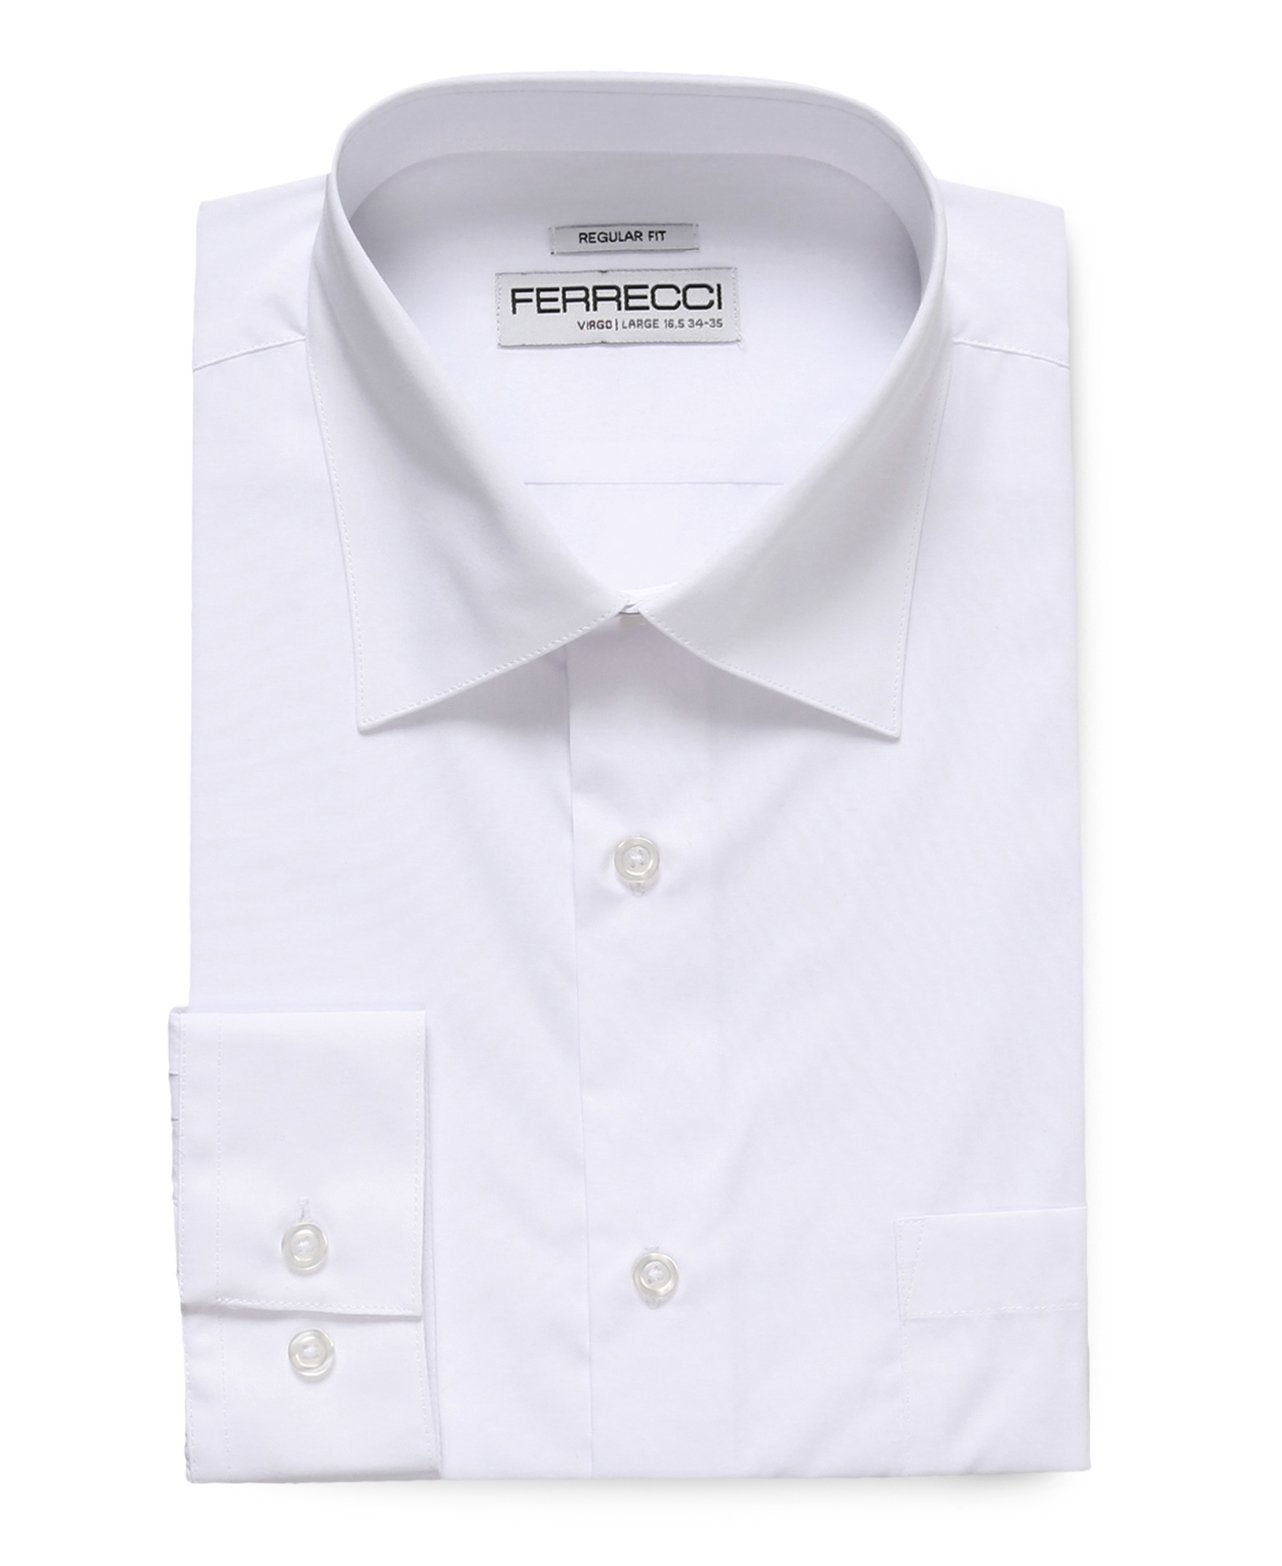 Virgo Snow Wht Reg Fit French Cuff Dress Shirt - Giorgio's Menswear